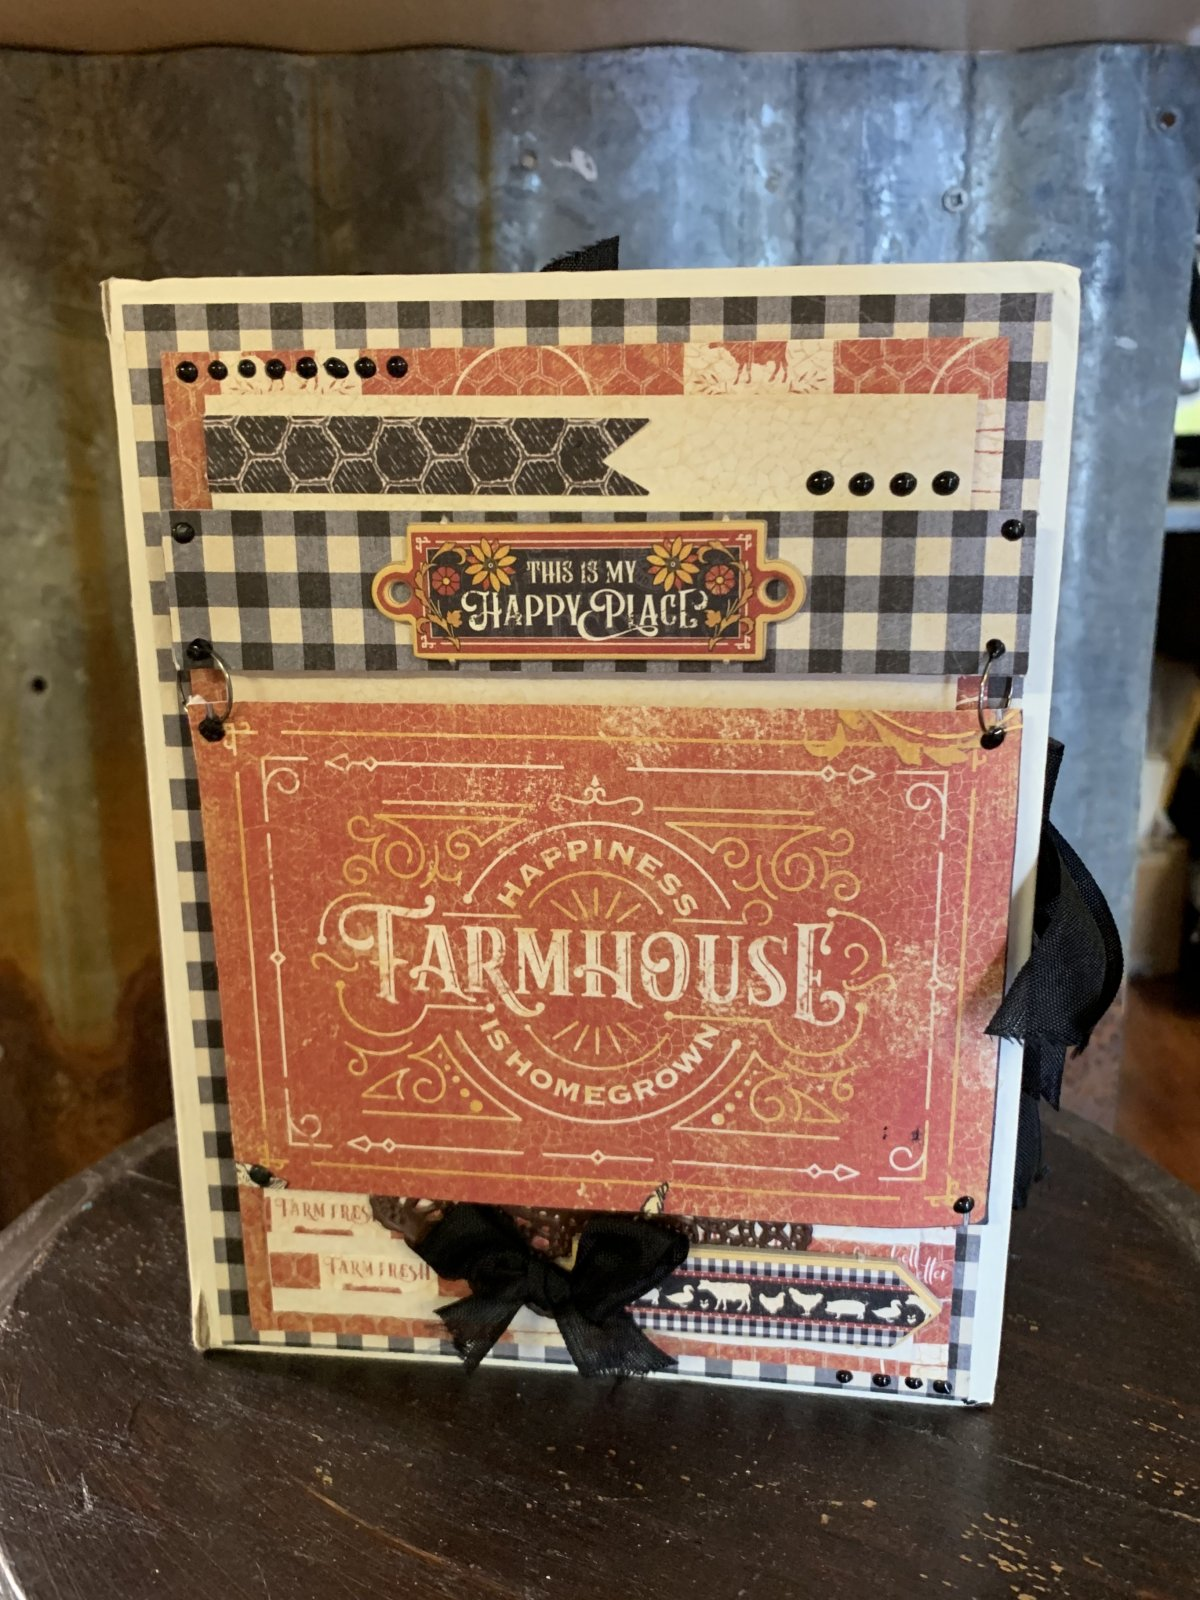 Graphic 45 Farmhouse album by Cynthia